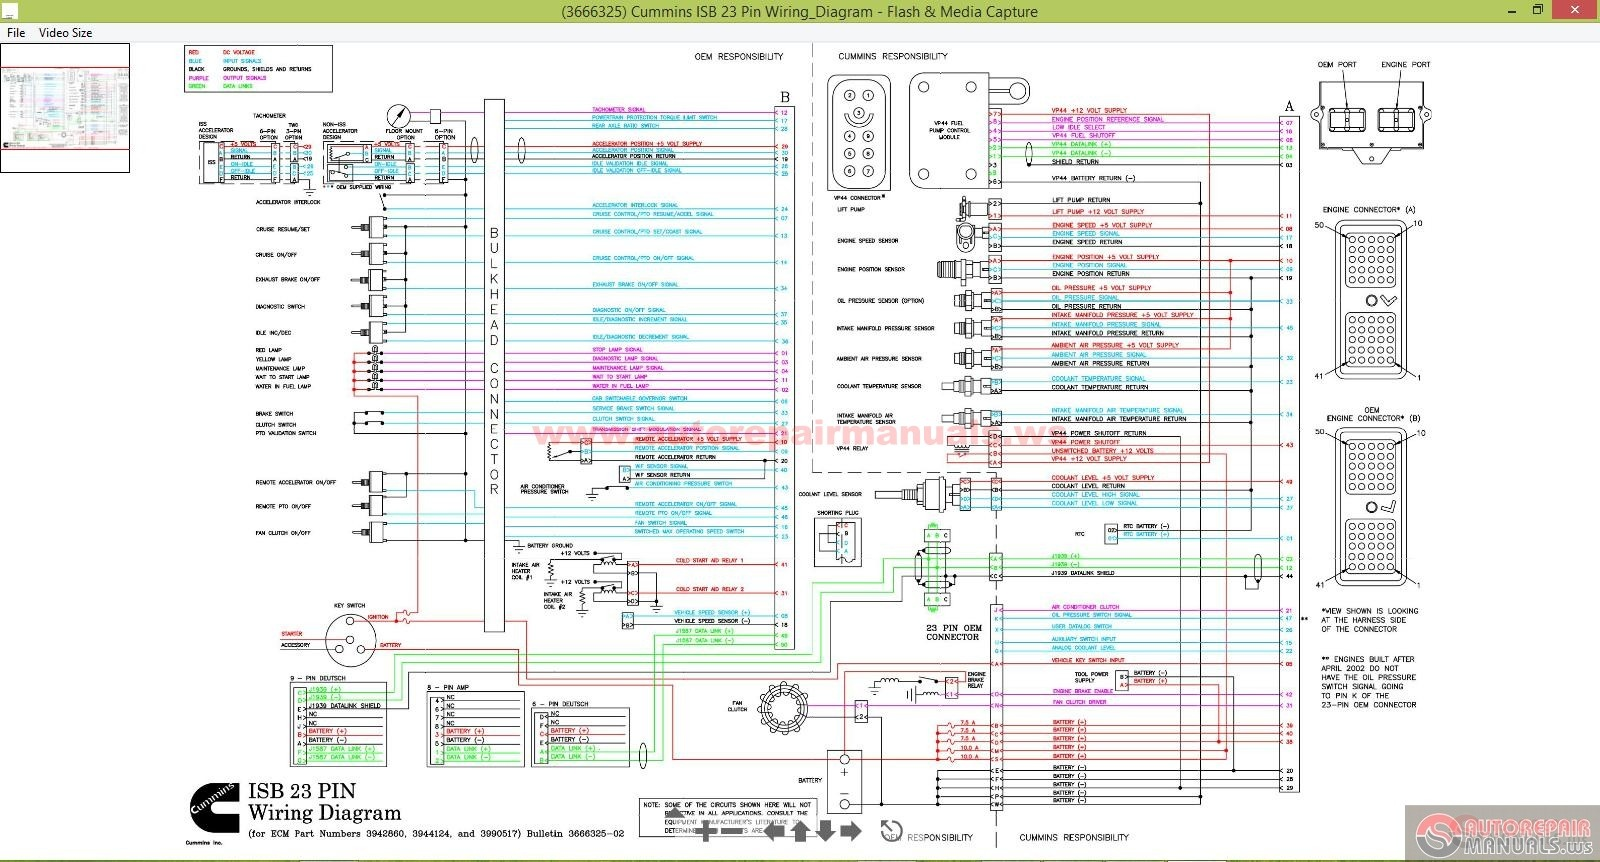 caterpillar wiring schematics with Cummins Isb 23 Pin Wiringdiagram on Caterpillar 325b L Excavator Electrical System Shematic further Cummins Isb 23 Pin Wiringdiagram furthermore 3406b Cat Engine Diagram moreover Kenworth Moto Mirror Wiring Diagram in addition 365987 Mod Motor Wiring Diagrams Schematics.